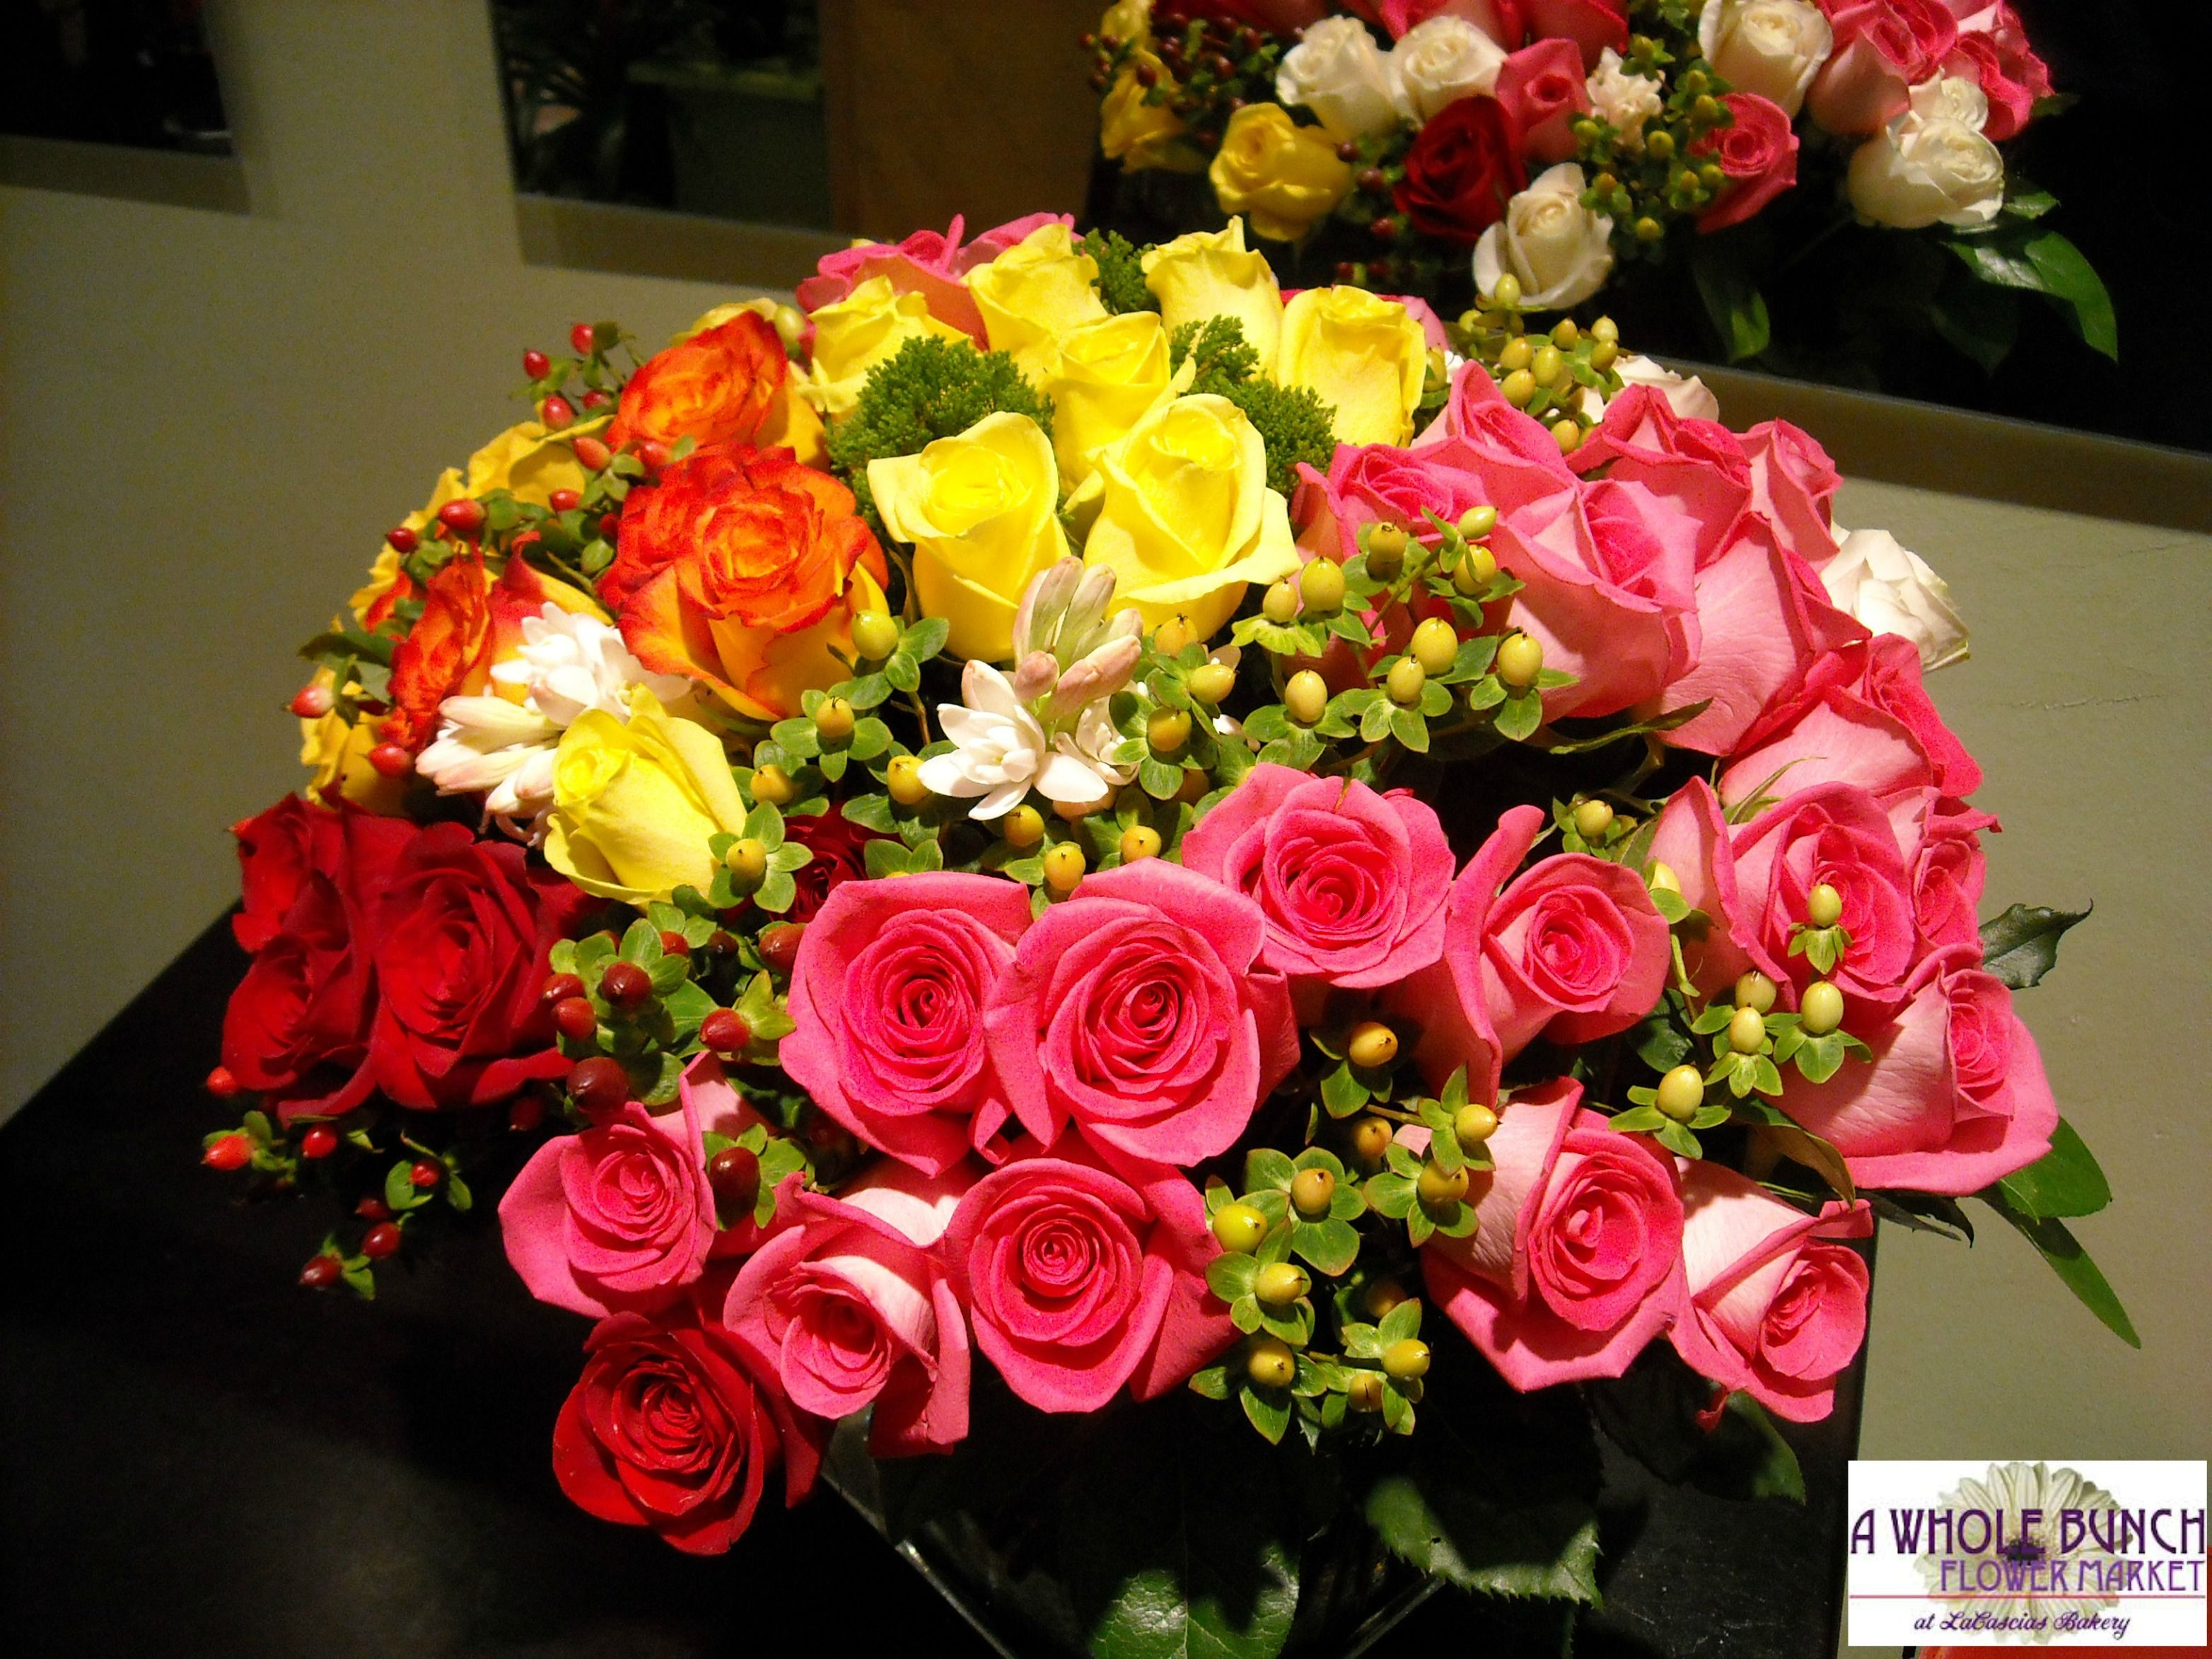 Rainbow mix of roses and other various seasonal flowers make a stunning centerpiece.